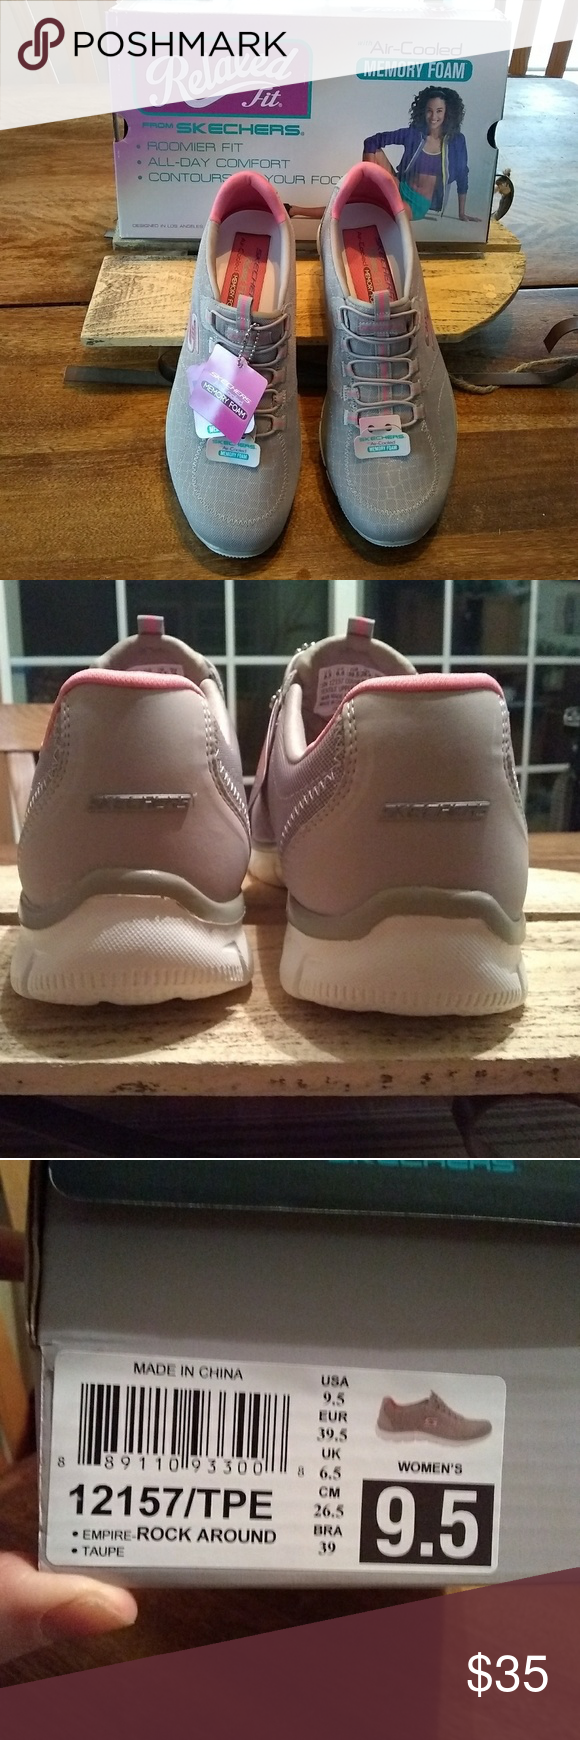 Skechers Relaxed Fit Sneakers Size 9.5